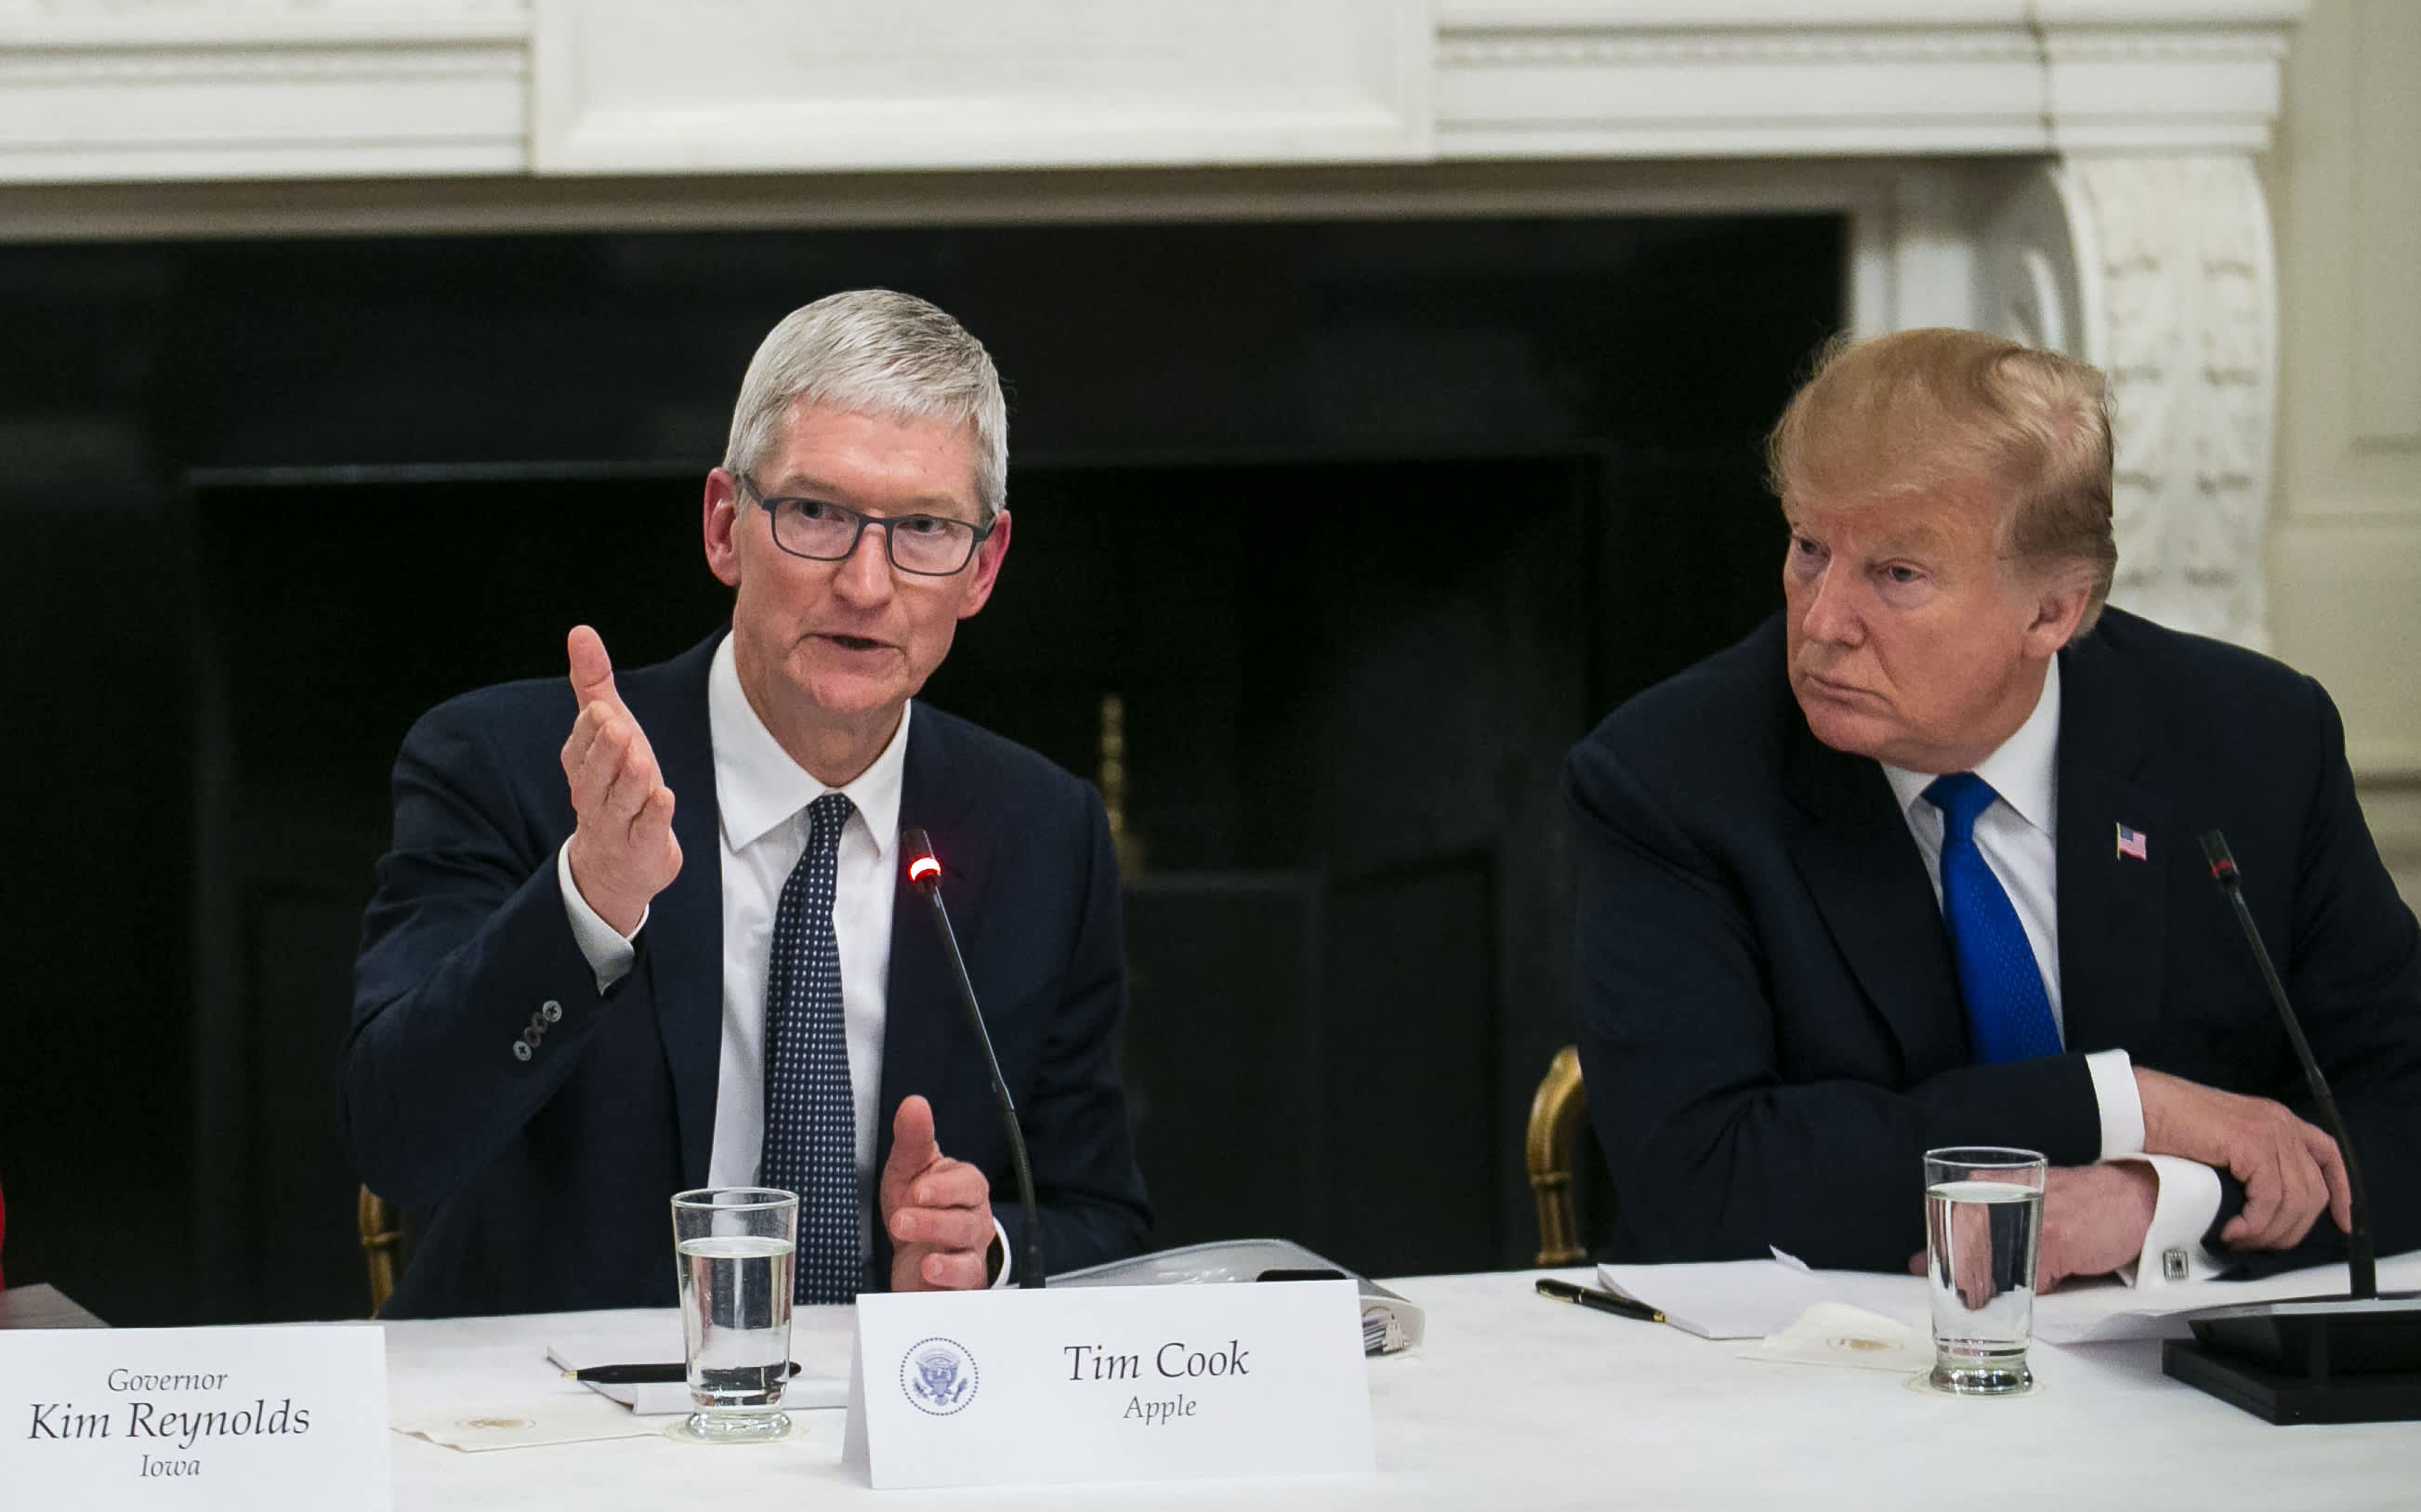 Apple Ceo Tim Cook 2019 Compensation Dropped From 2018